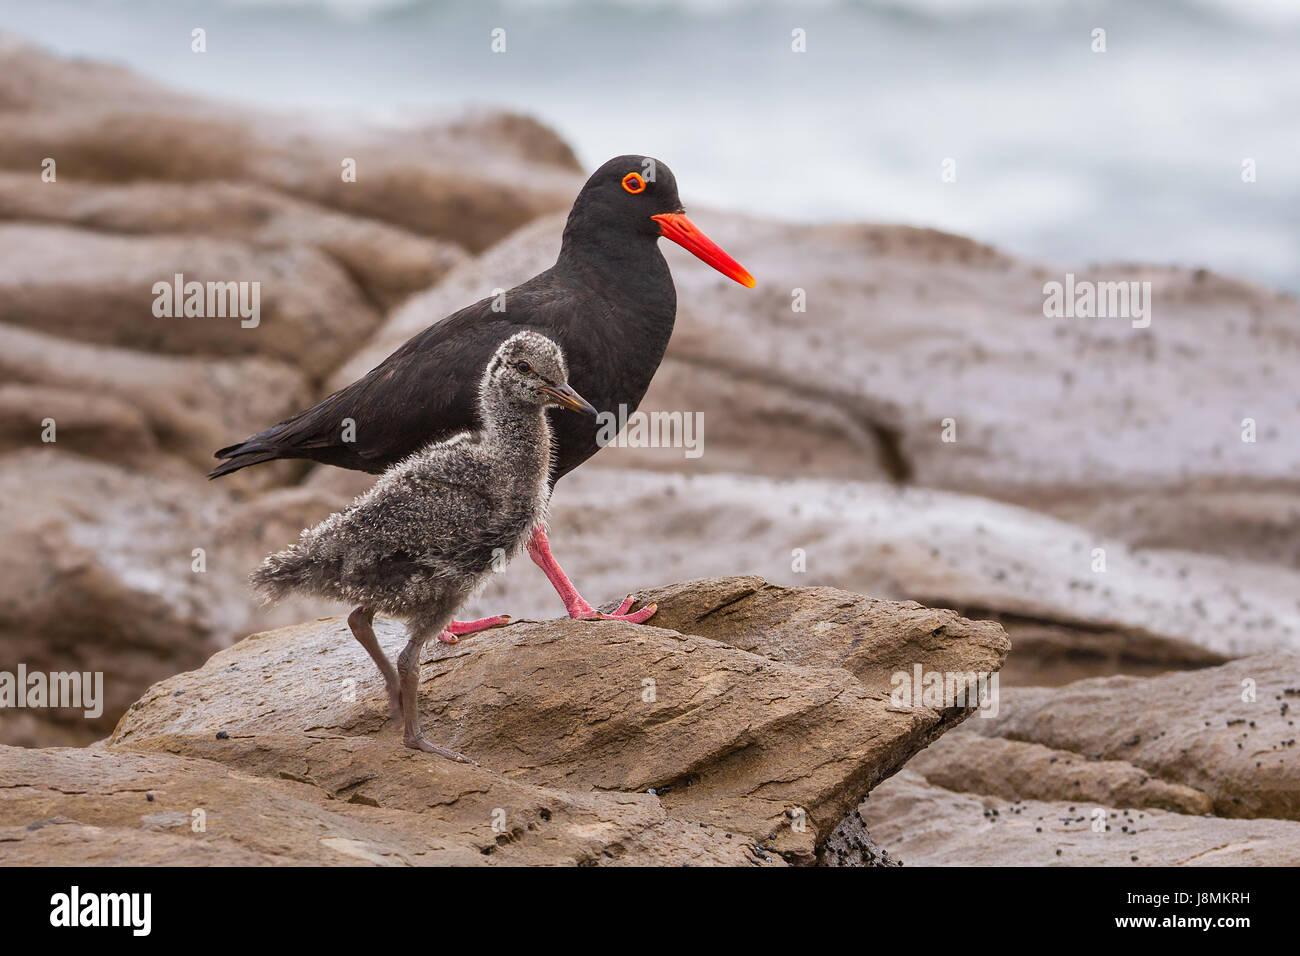 African black oystercatchers, with striking red beak, mother with chick, walking along the rocky shore at Glengariff - Stock Image